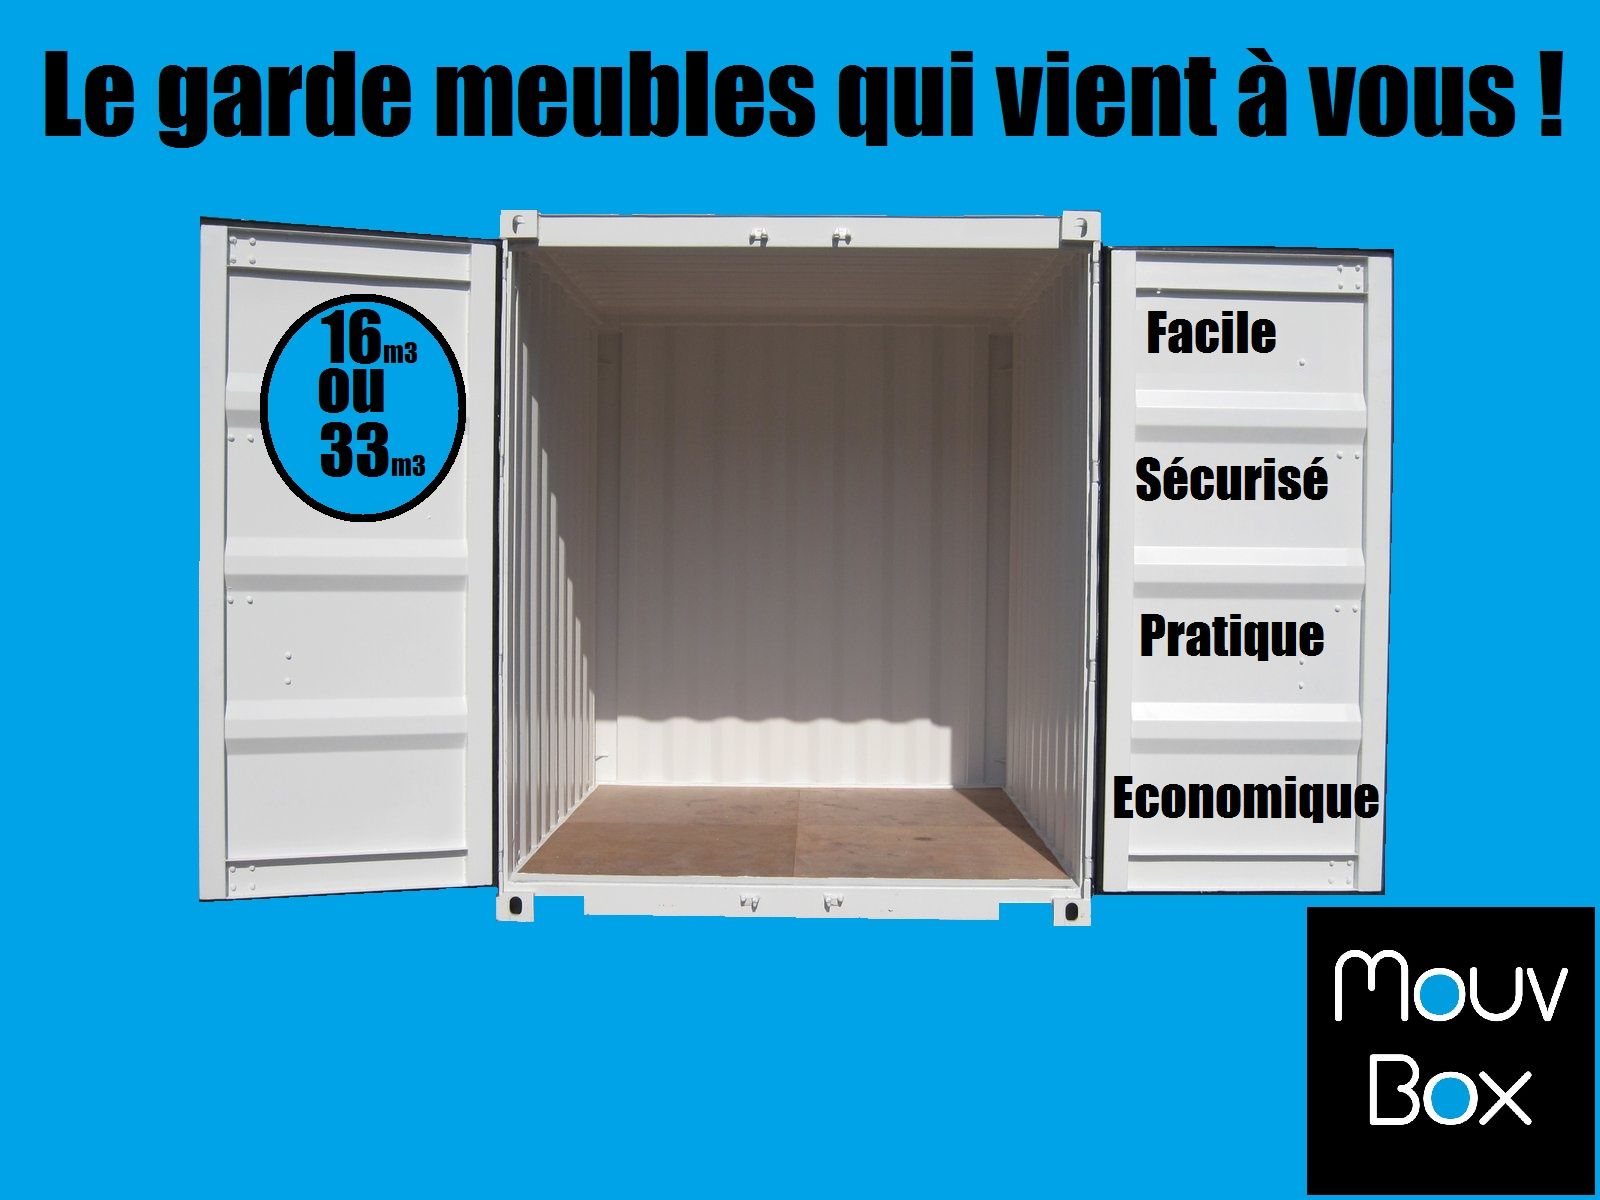 mouvbox france le garde meubles qui vient vous. Black Bedroom Furniture Sets. Home Design Ideas